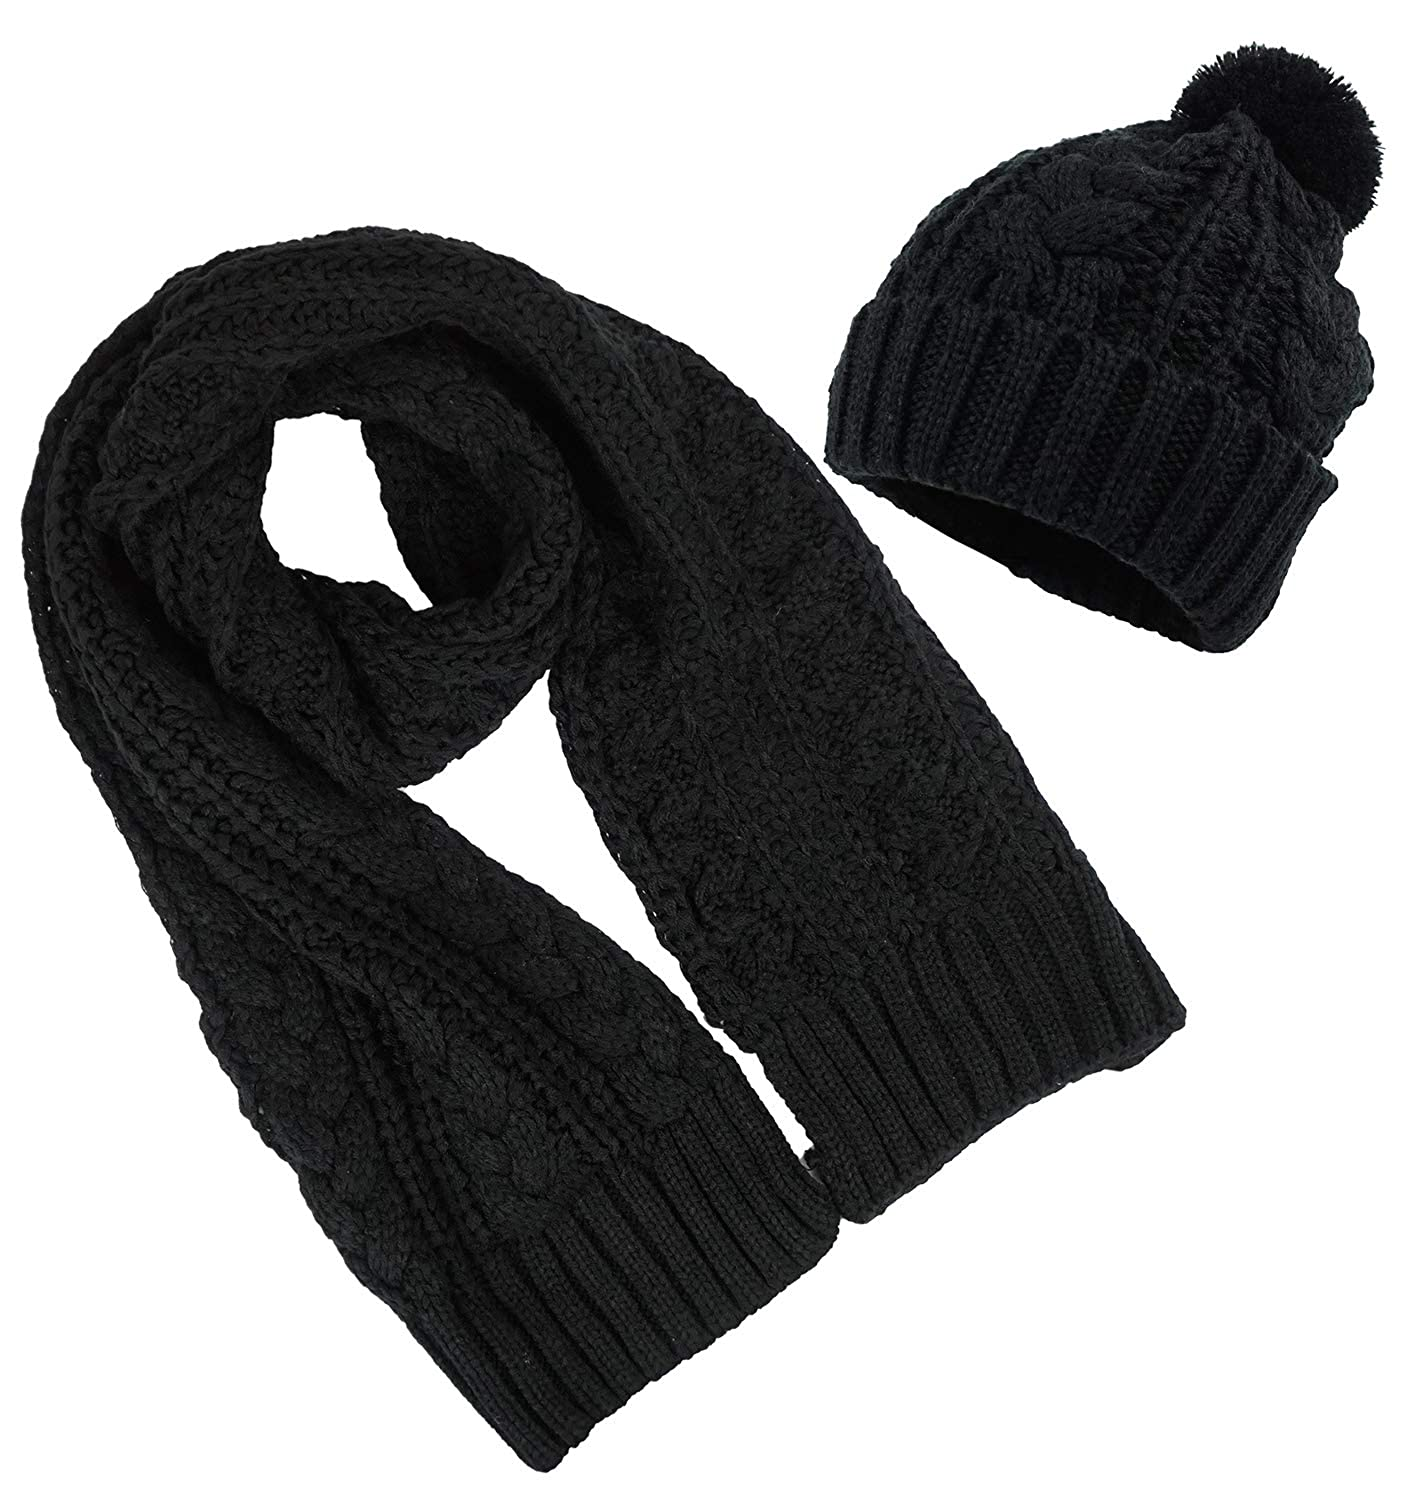 3fae2f4e075bb Women s Scarf and Hat 2pcs Set Knitted Warm Skullcaps Thicken Beanie ...